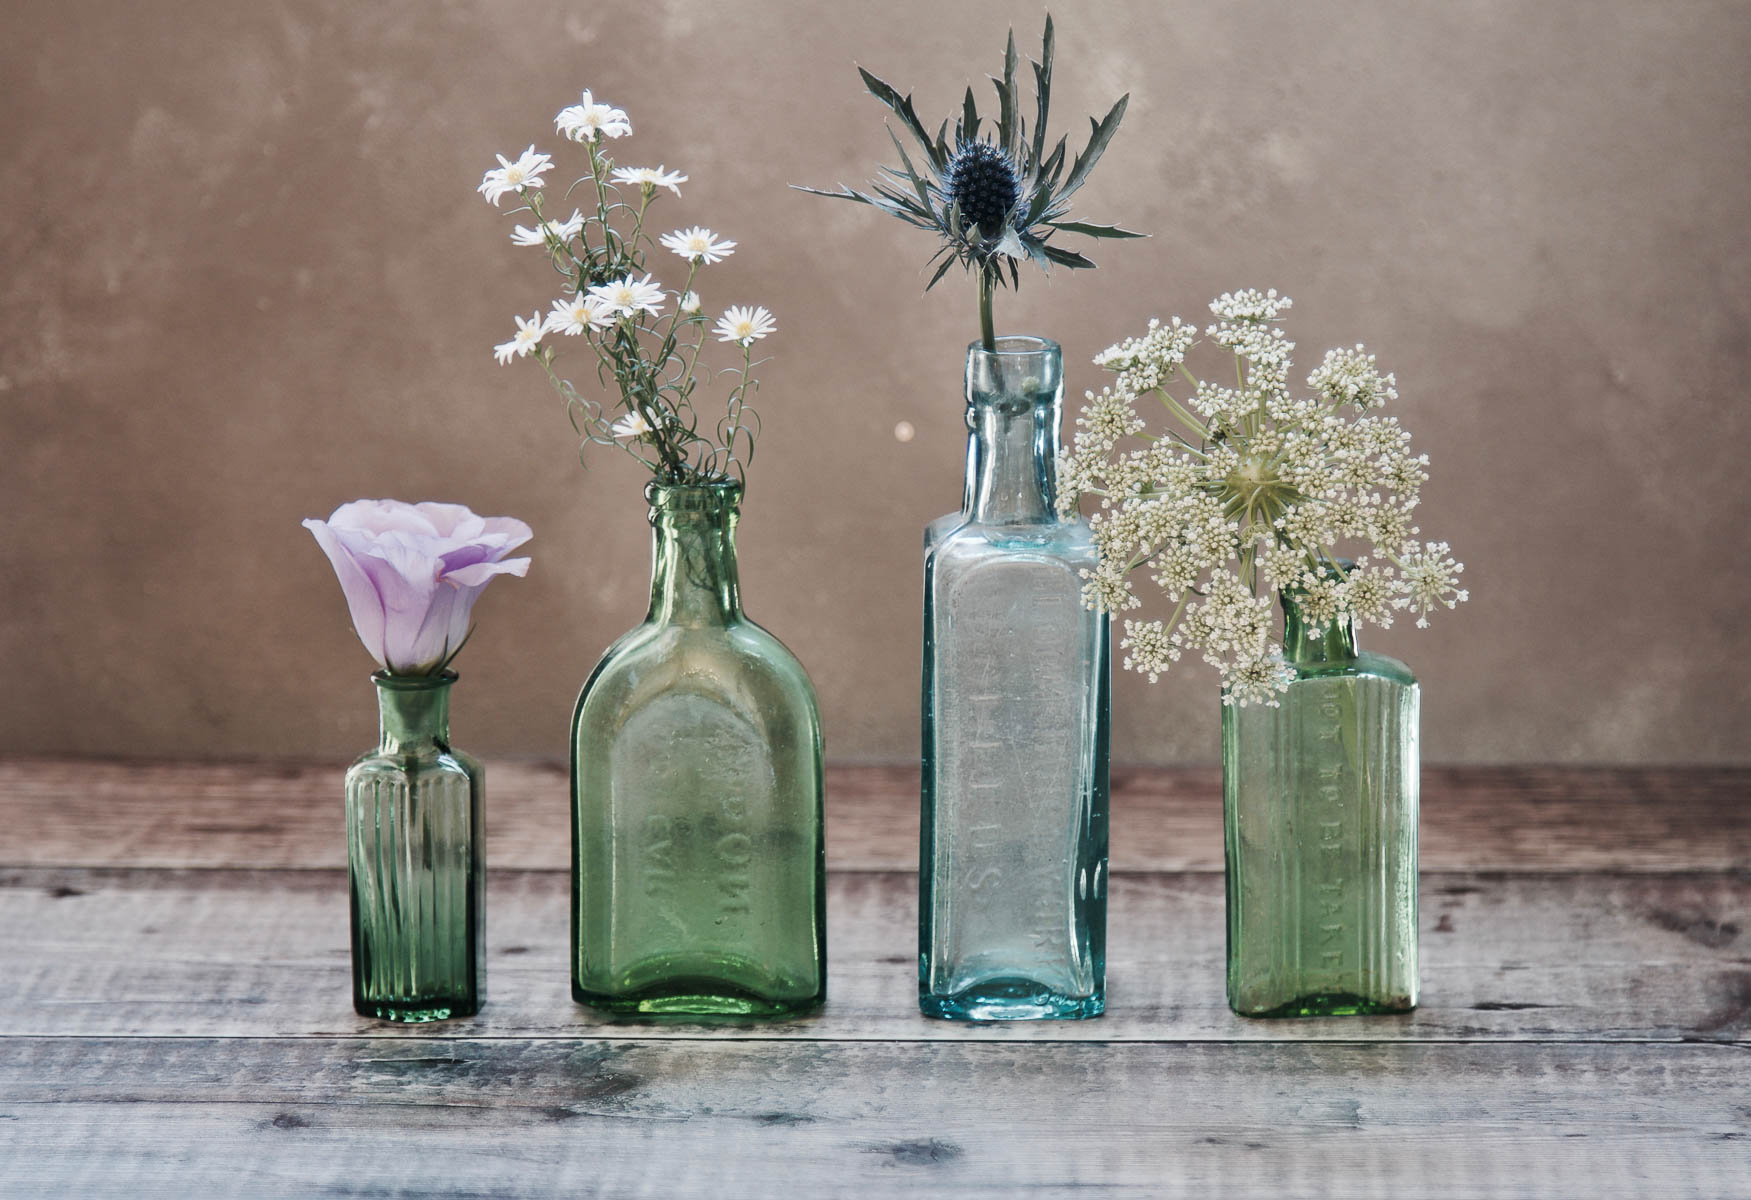 Single blooms in simple vases for simple holiday decor | Holiday entertaining made simple with lessons learned from The Barefoot Contessa | foodwithaview.com